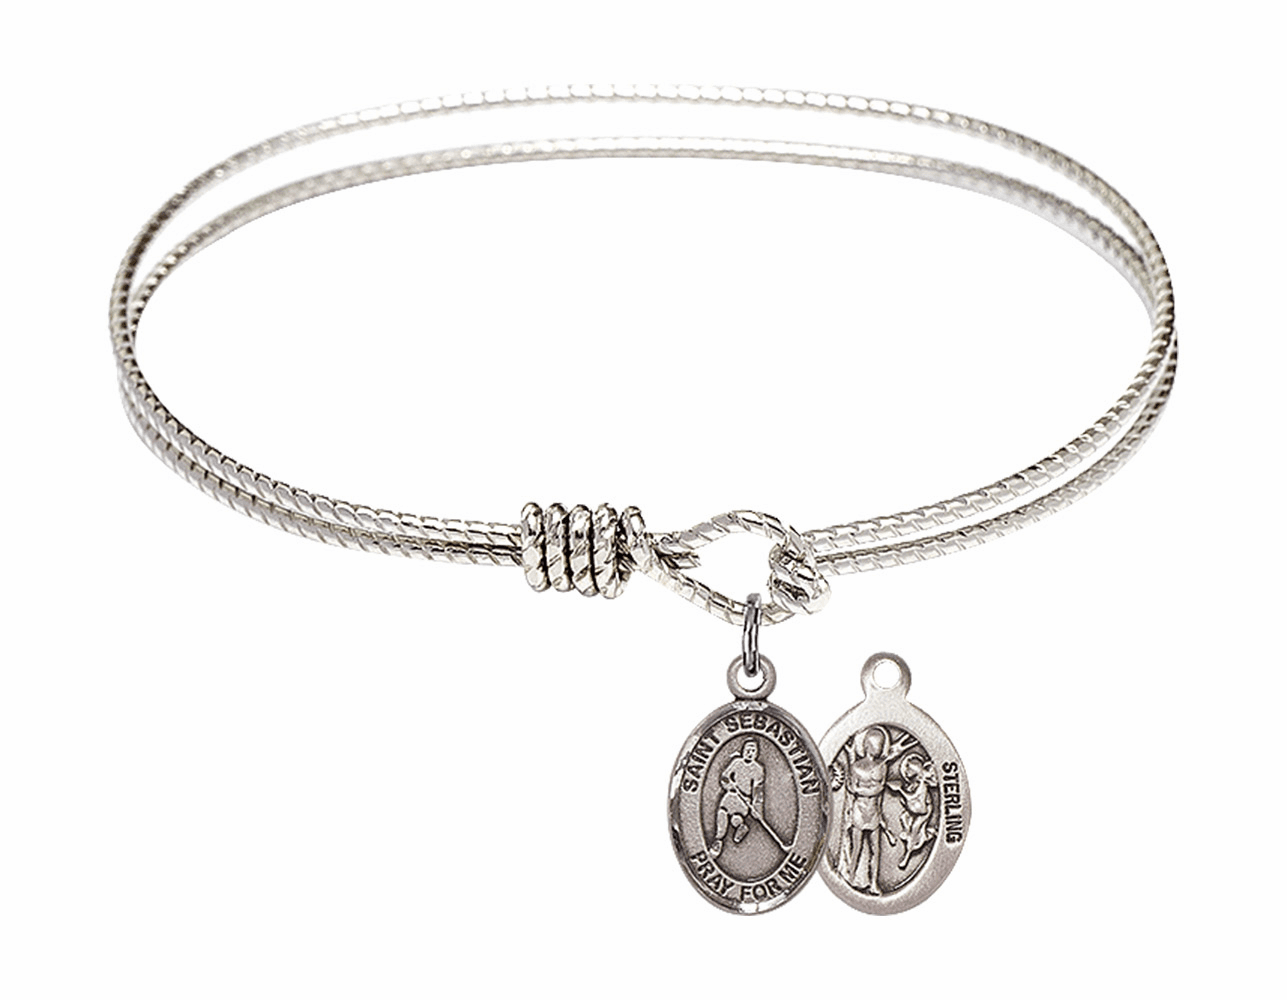 Twist Round Eye Hook St Sebastian Ice Hockey Bangle Charm Bracelet by Bliss